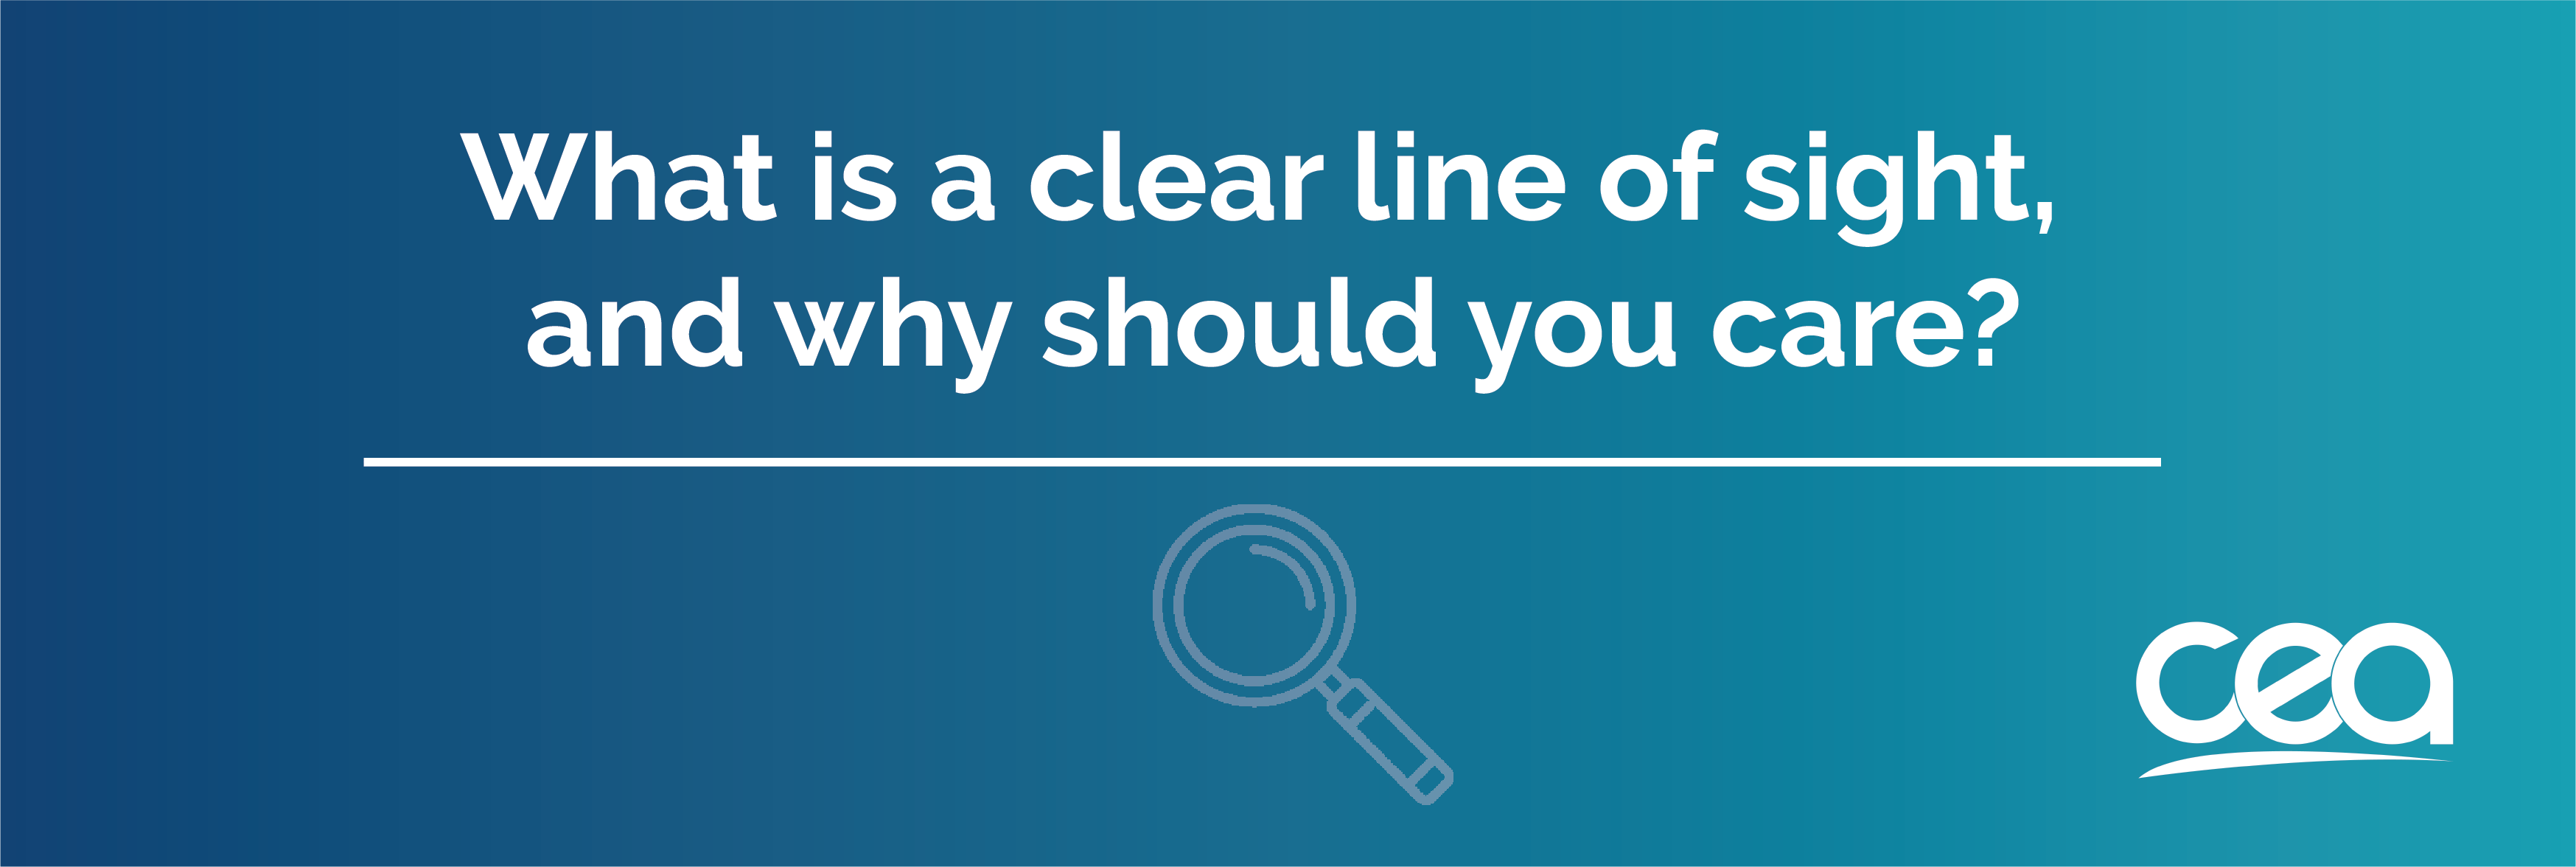 What is a clear line of sight and why should you care?